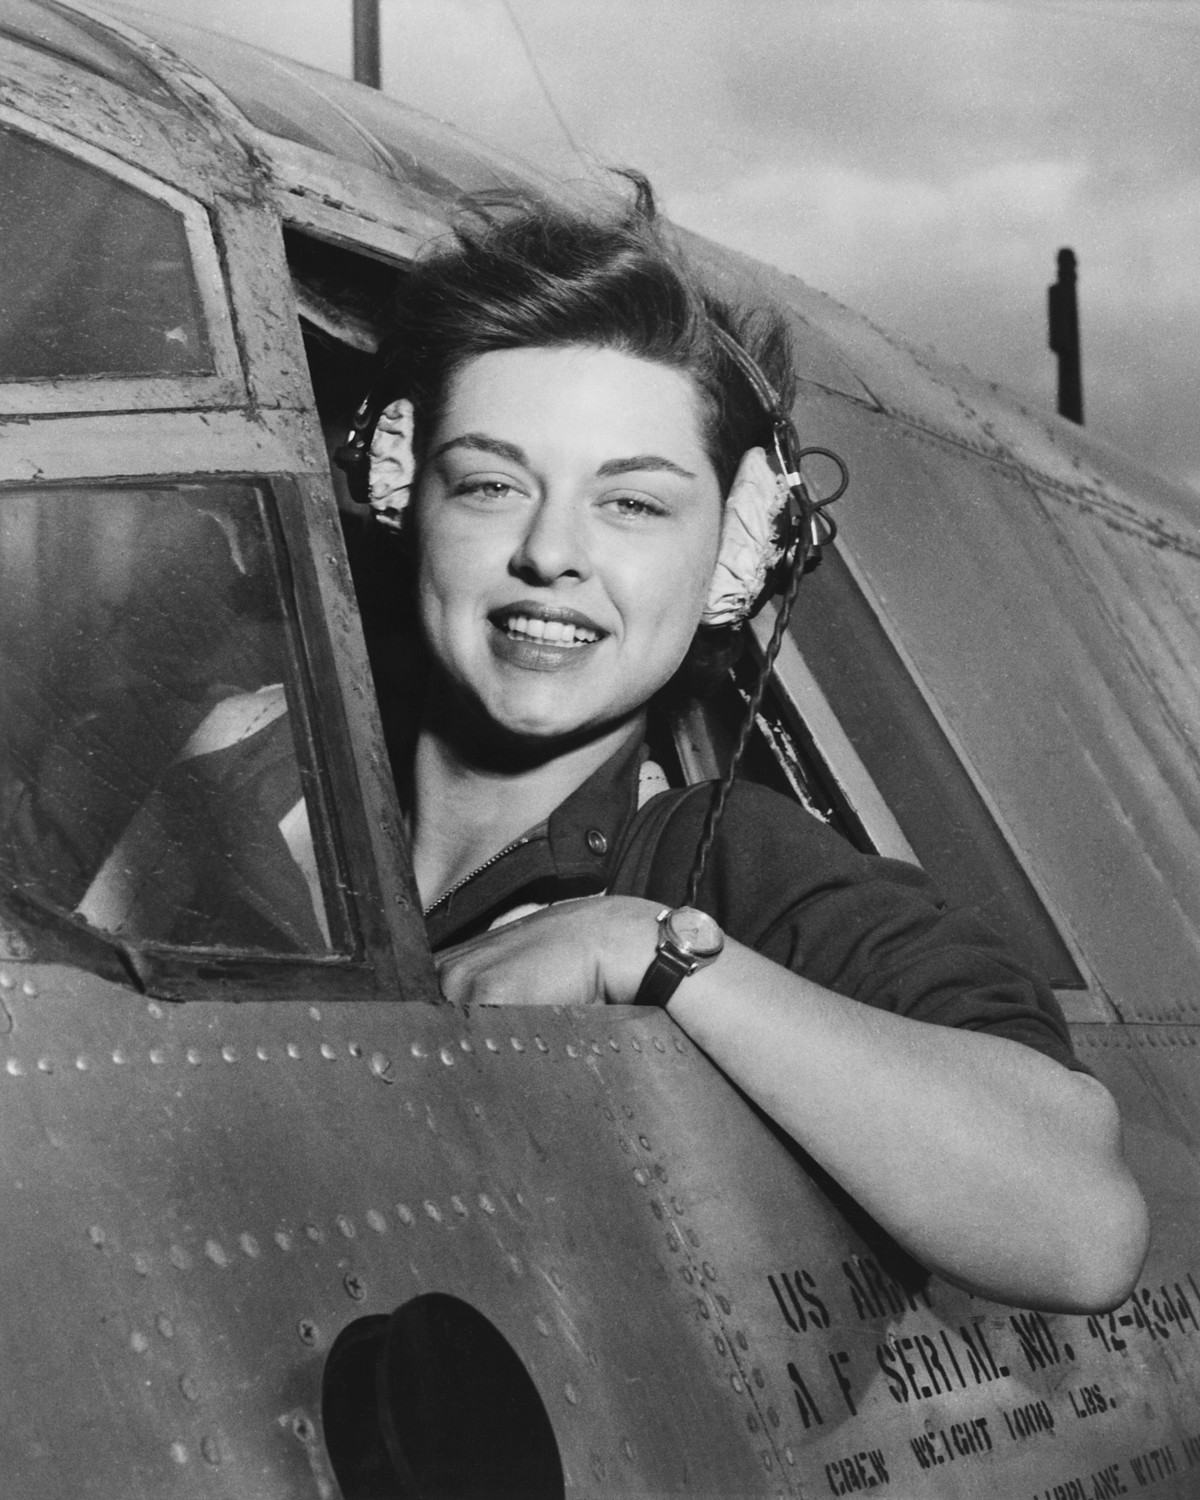 A member of the Womens Airforce Service Pilots (WASP) pictured during WWII. Women helped test aircraft and move materials throughout the continent during the war when male pilots were in short supply.